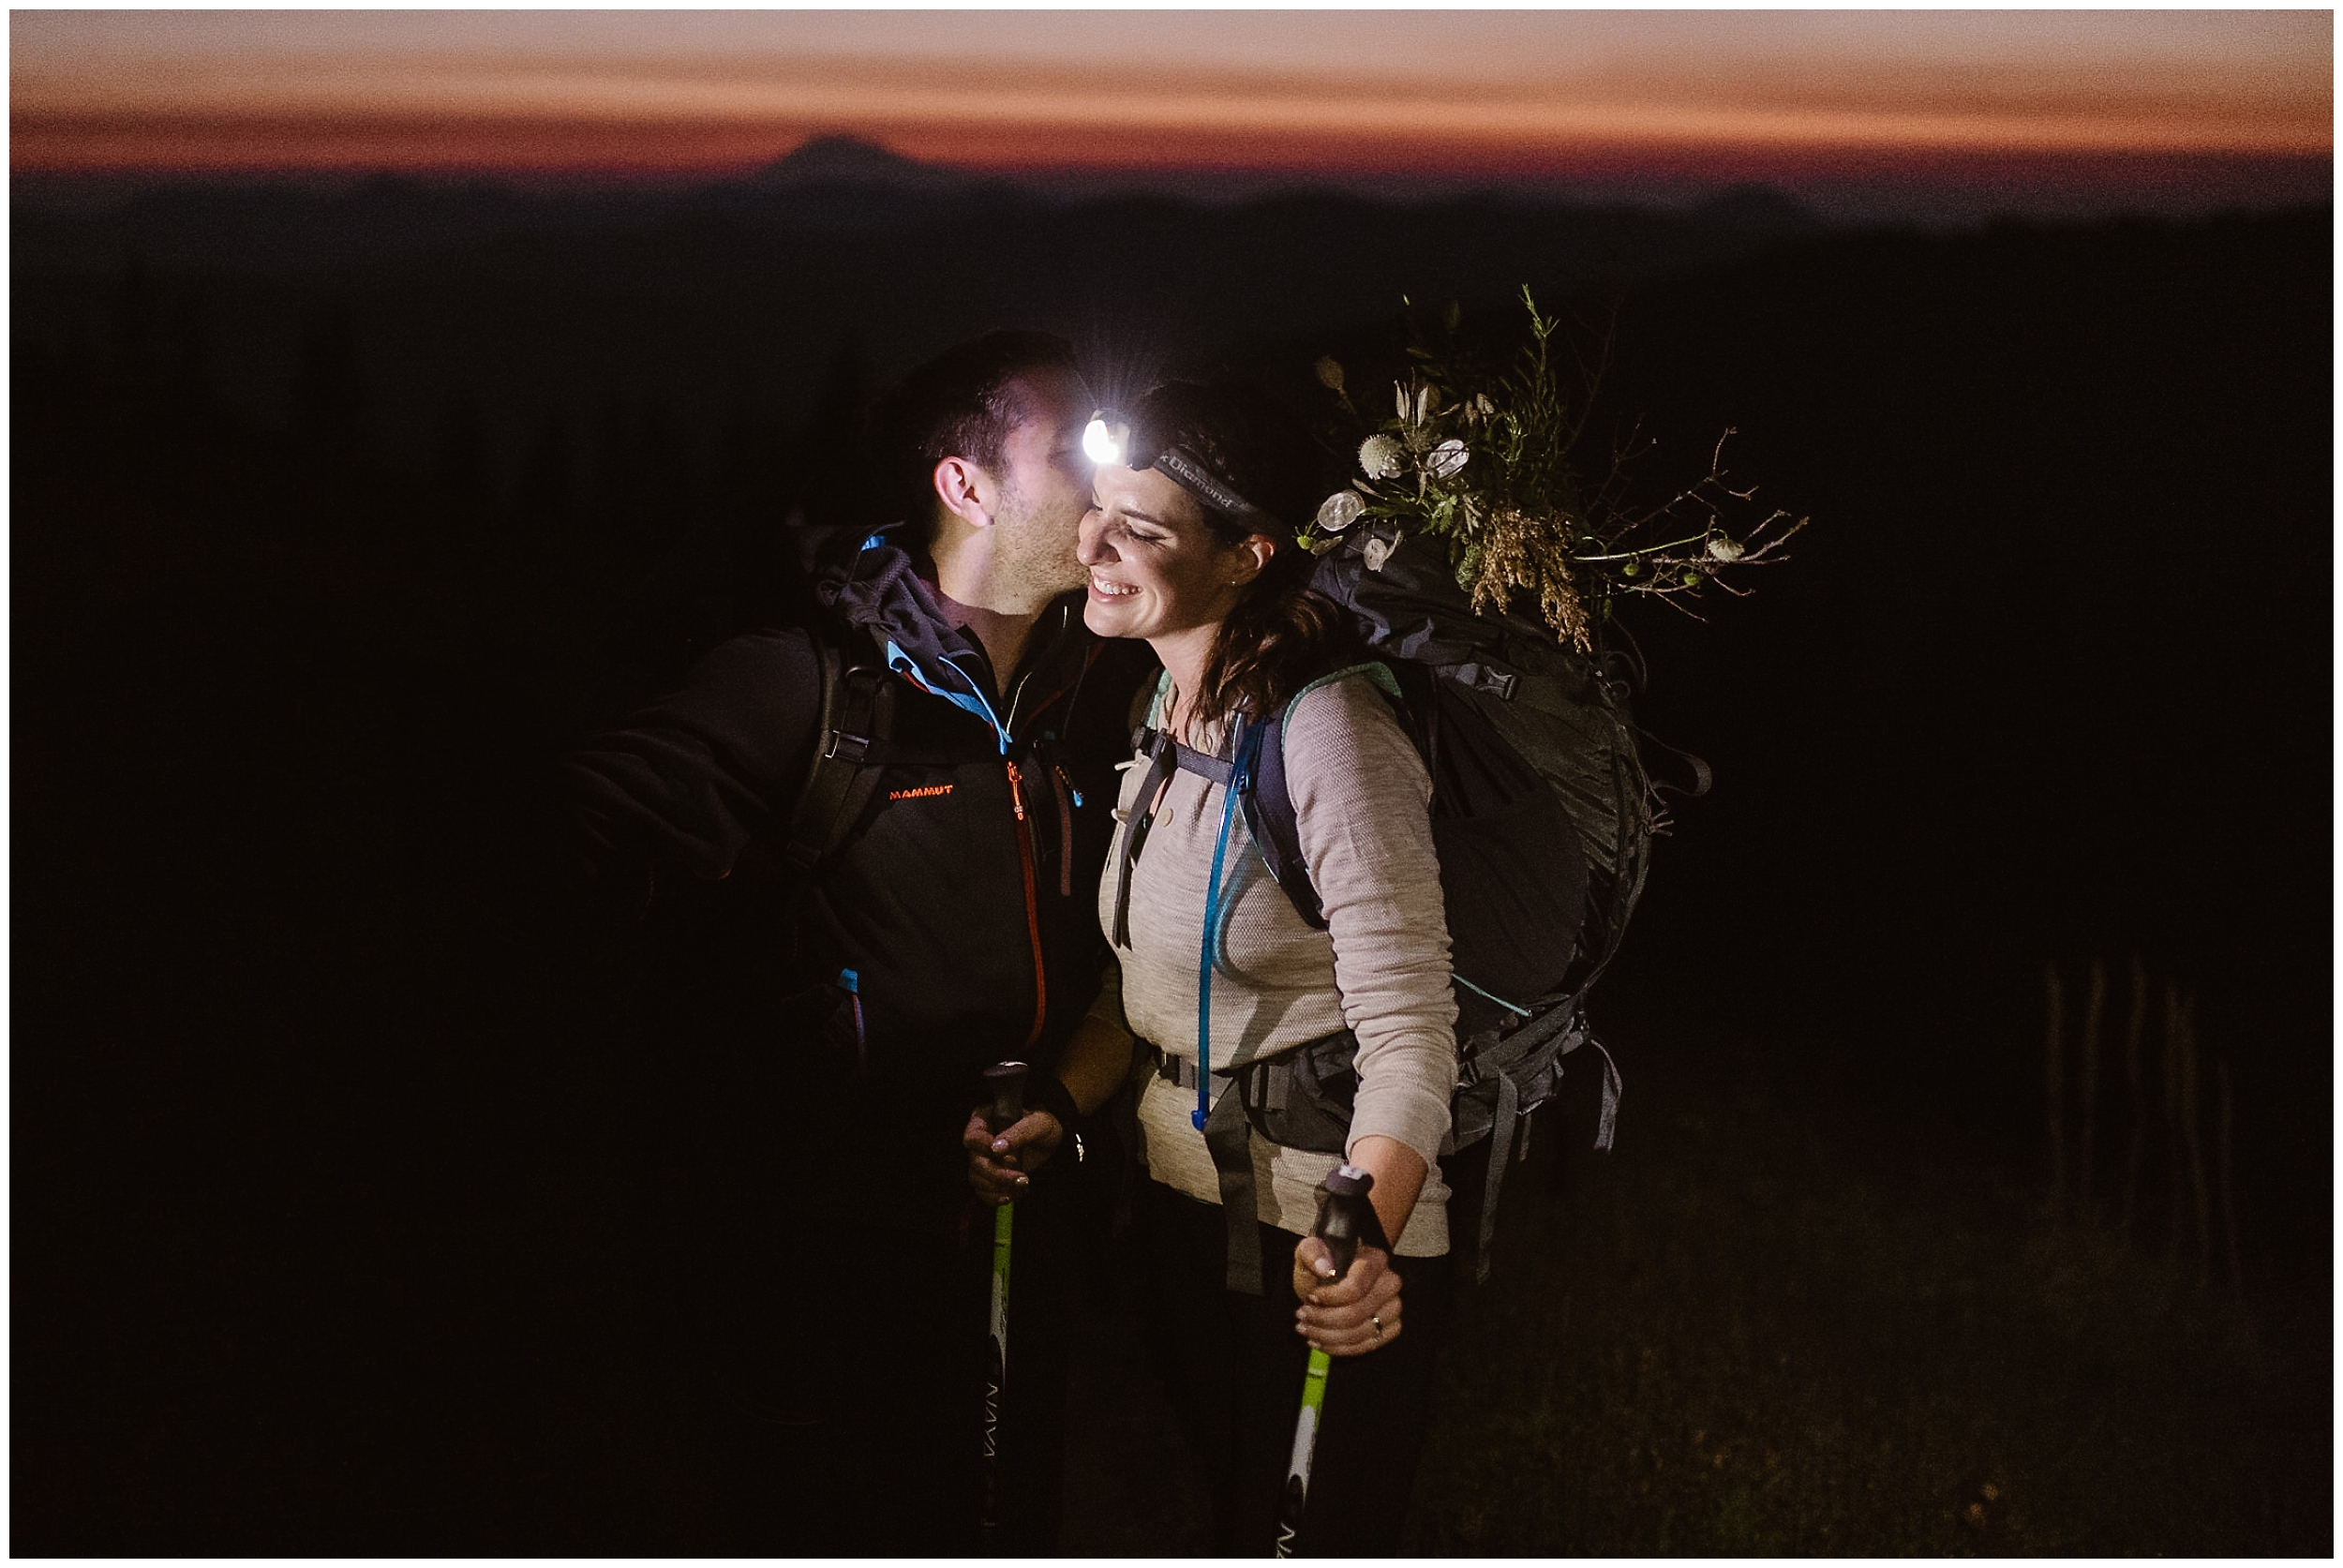 David leans in to kiss Lauryn on the cheek during their sunset hike. With just their headlamps to light their way, they'begin to hike up to elope in Washington State. The sun slowly rises behind them in the background.